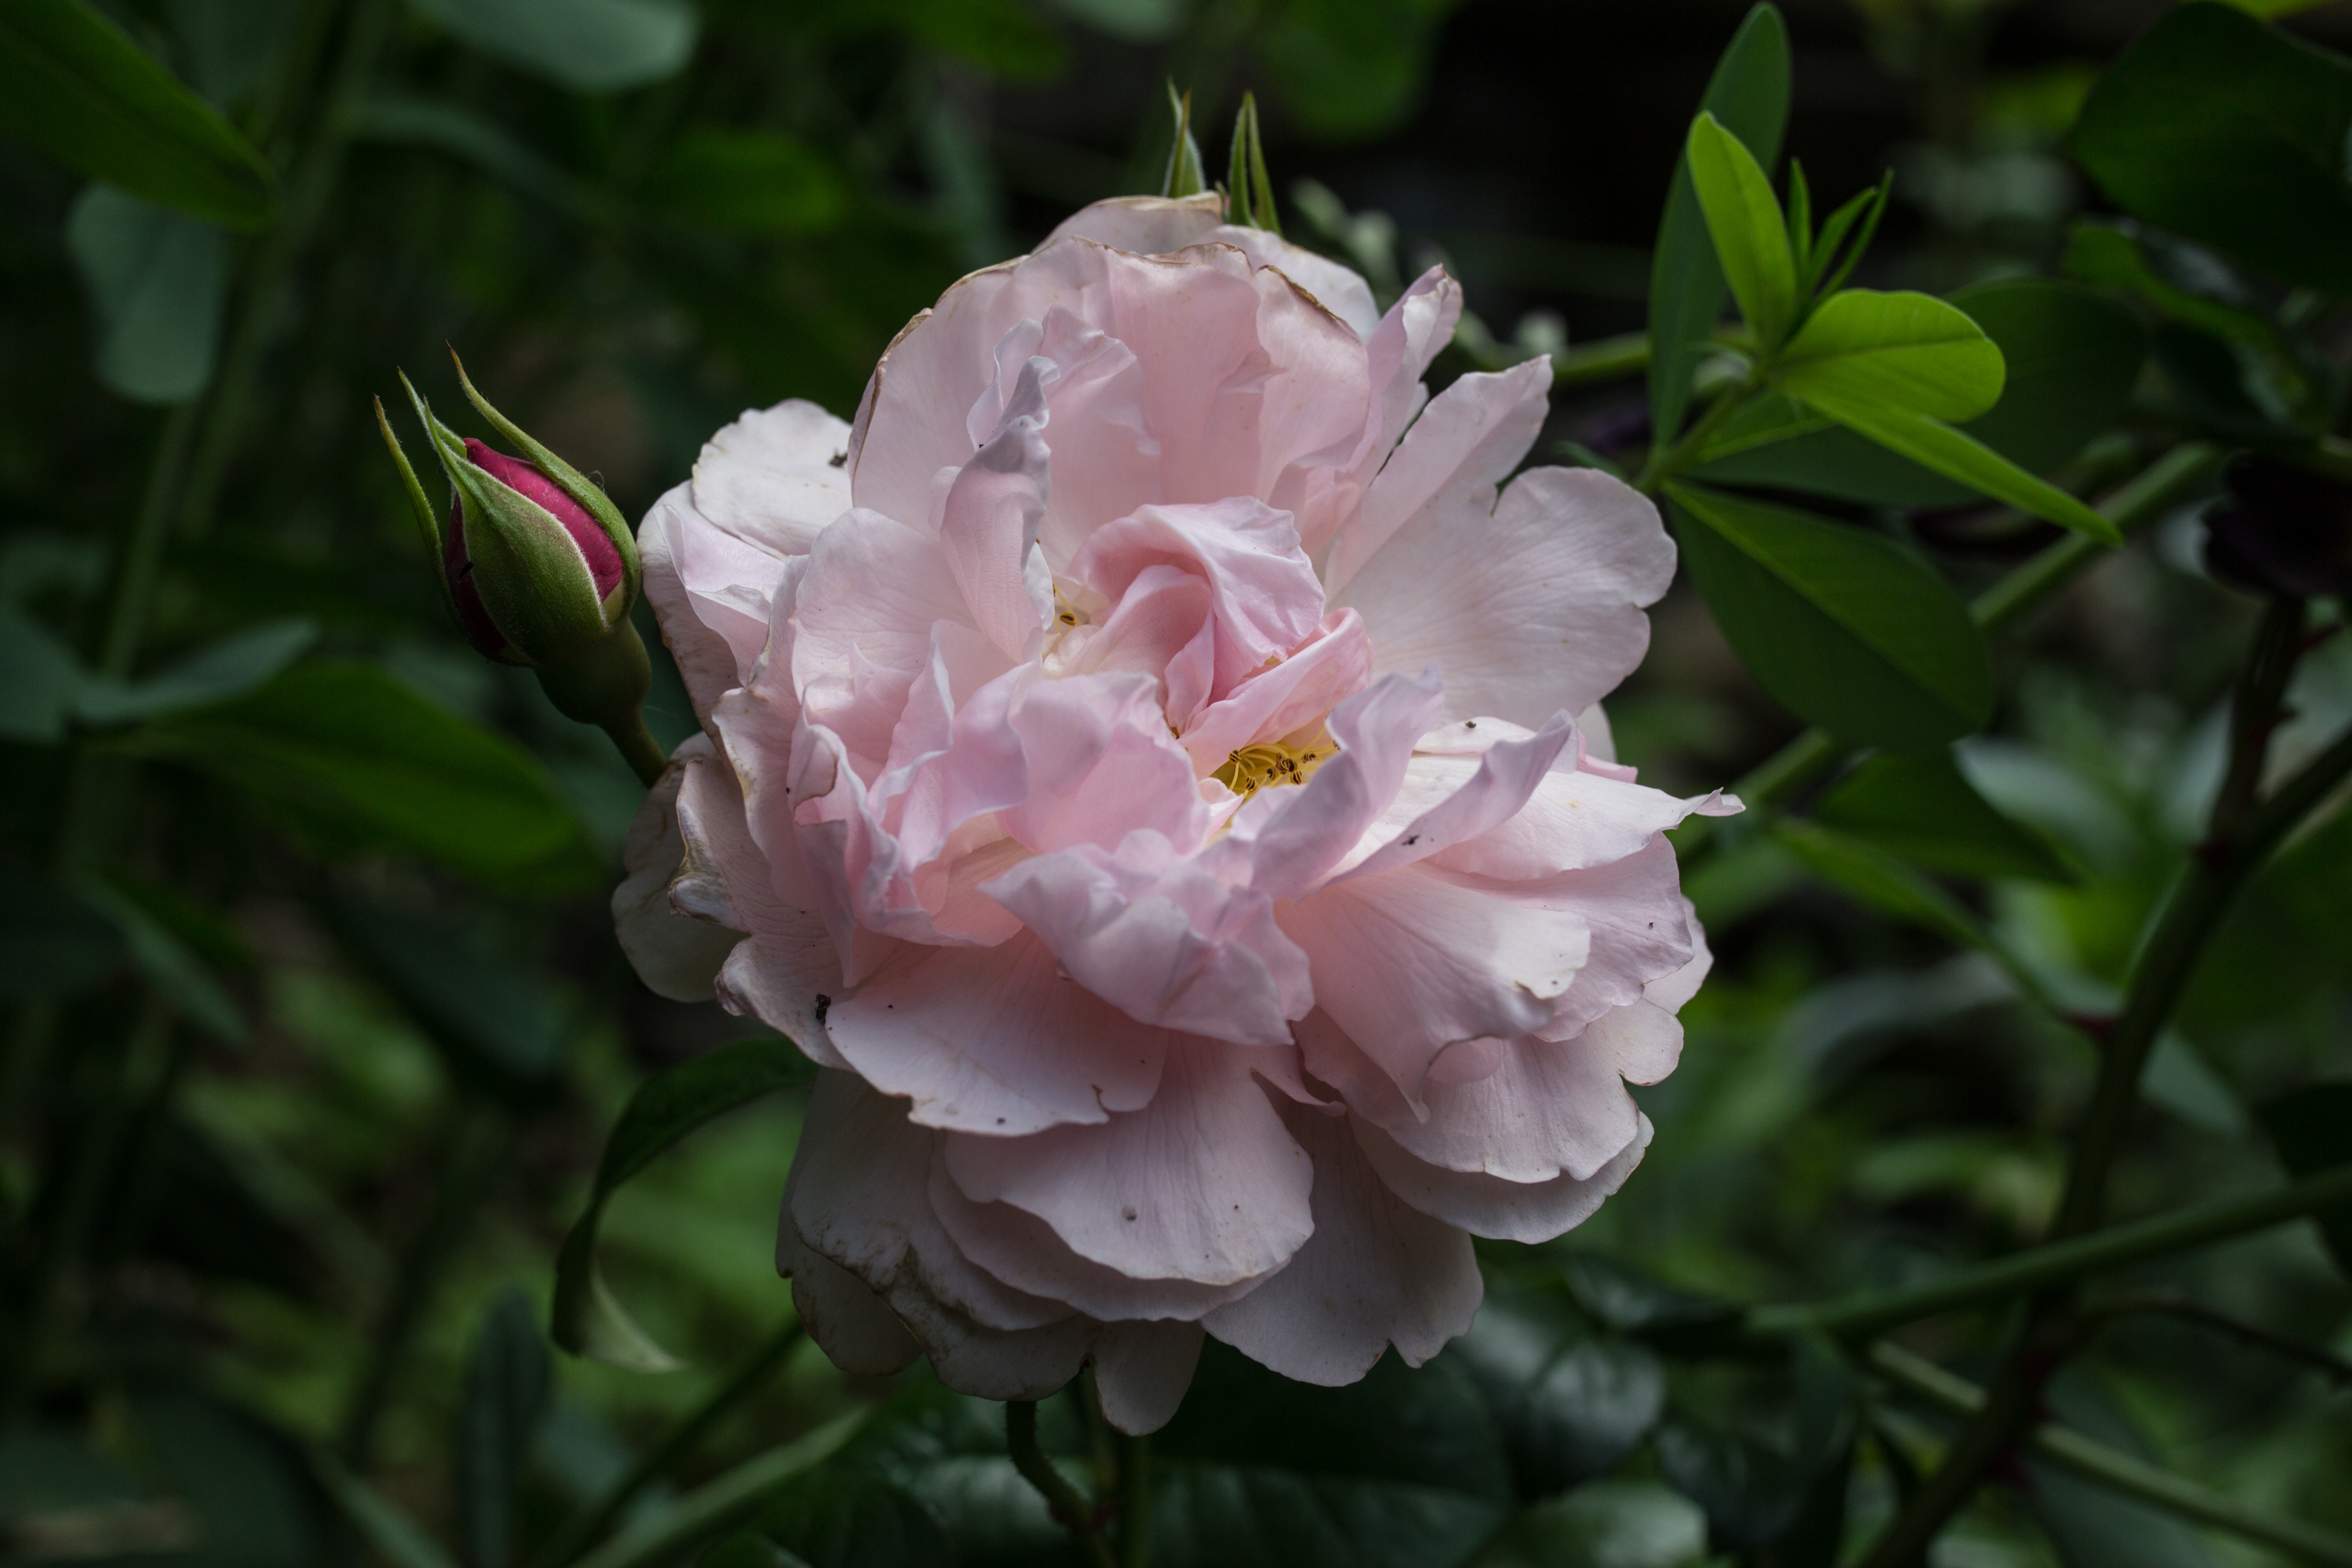 photo of single pink rose from the garden of floral designer and artist Gloria B. Collins